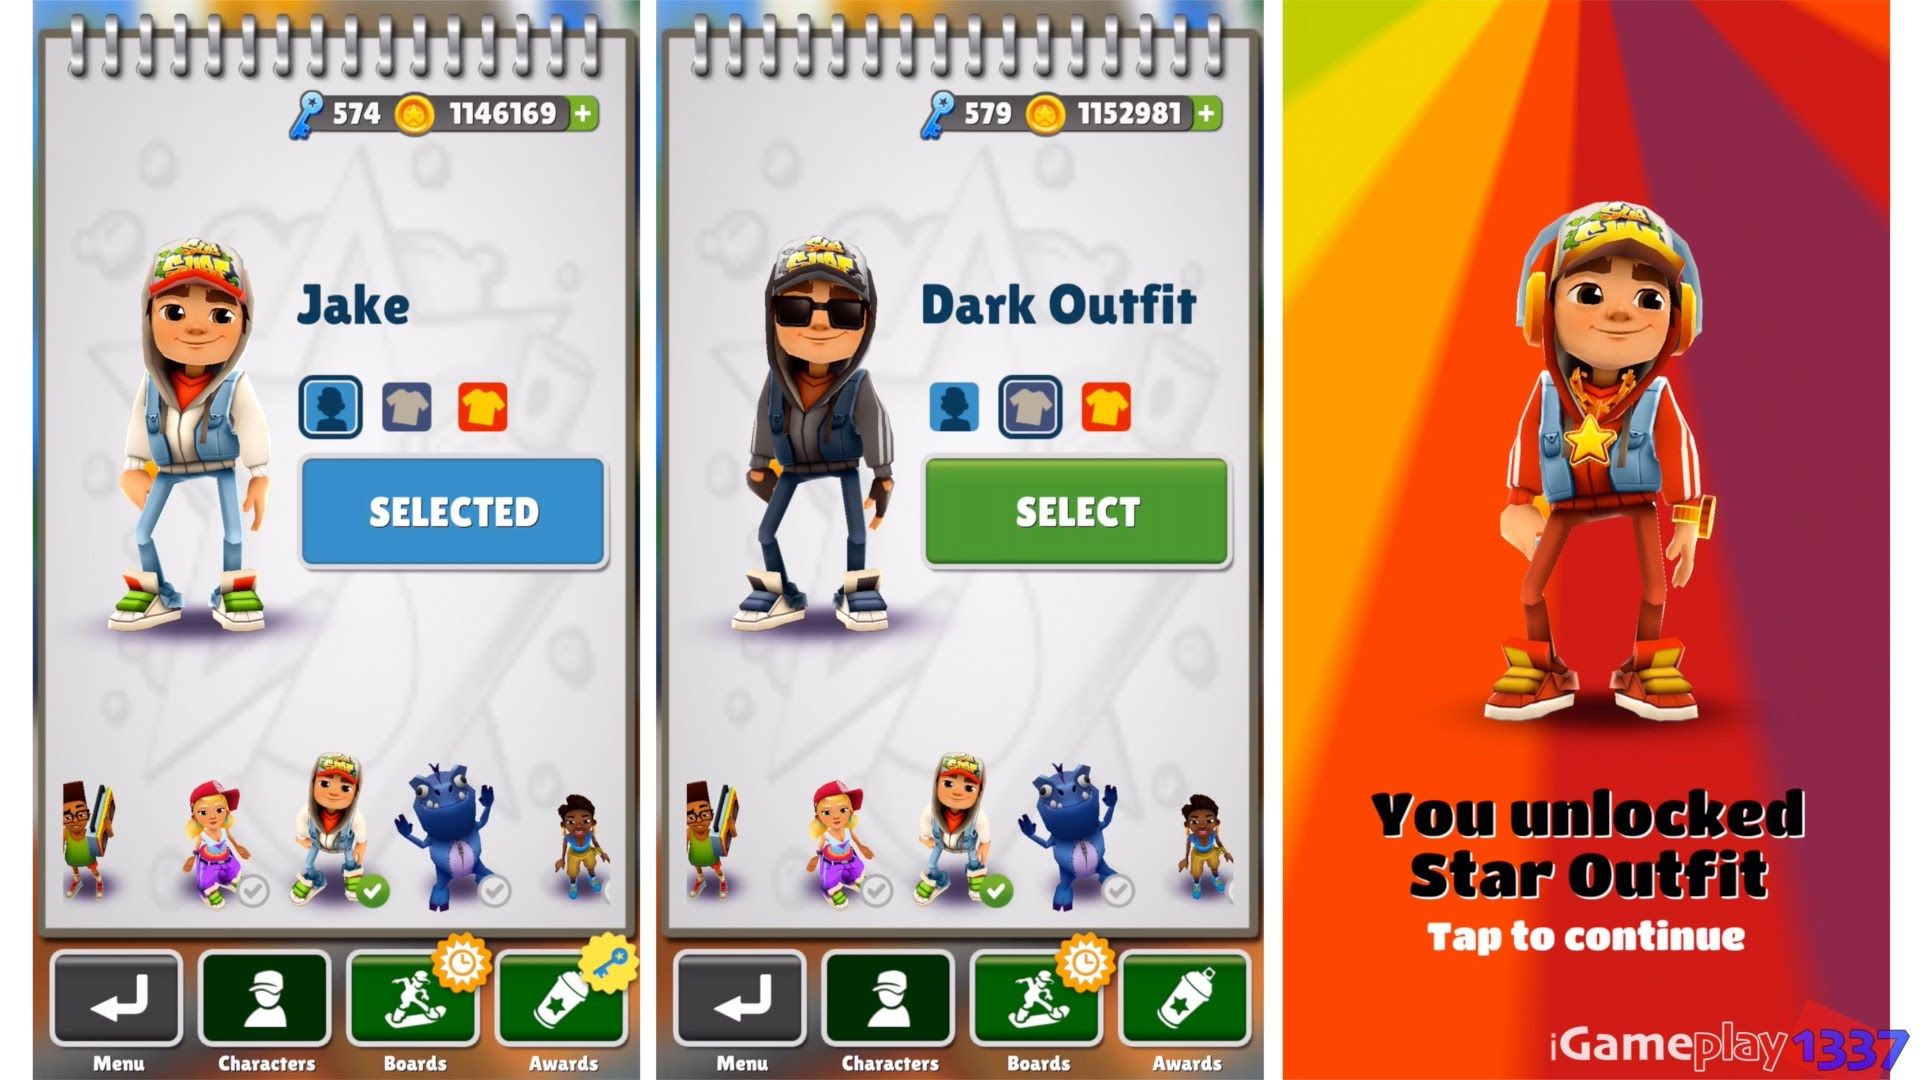 09dc0fa68ead61b2d2a72cf8cec8c504 - How To Get All The Characters In Subway Surfers